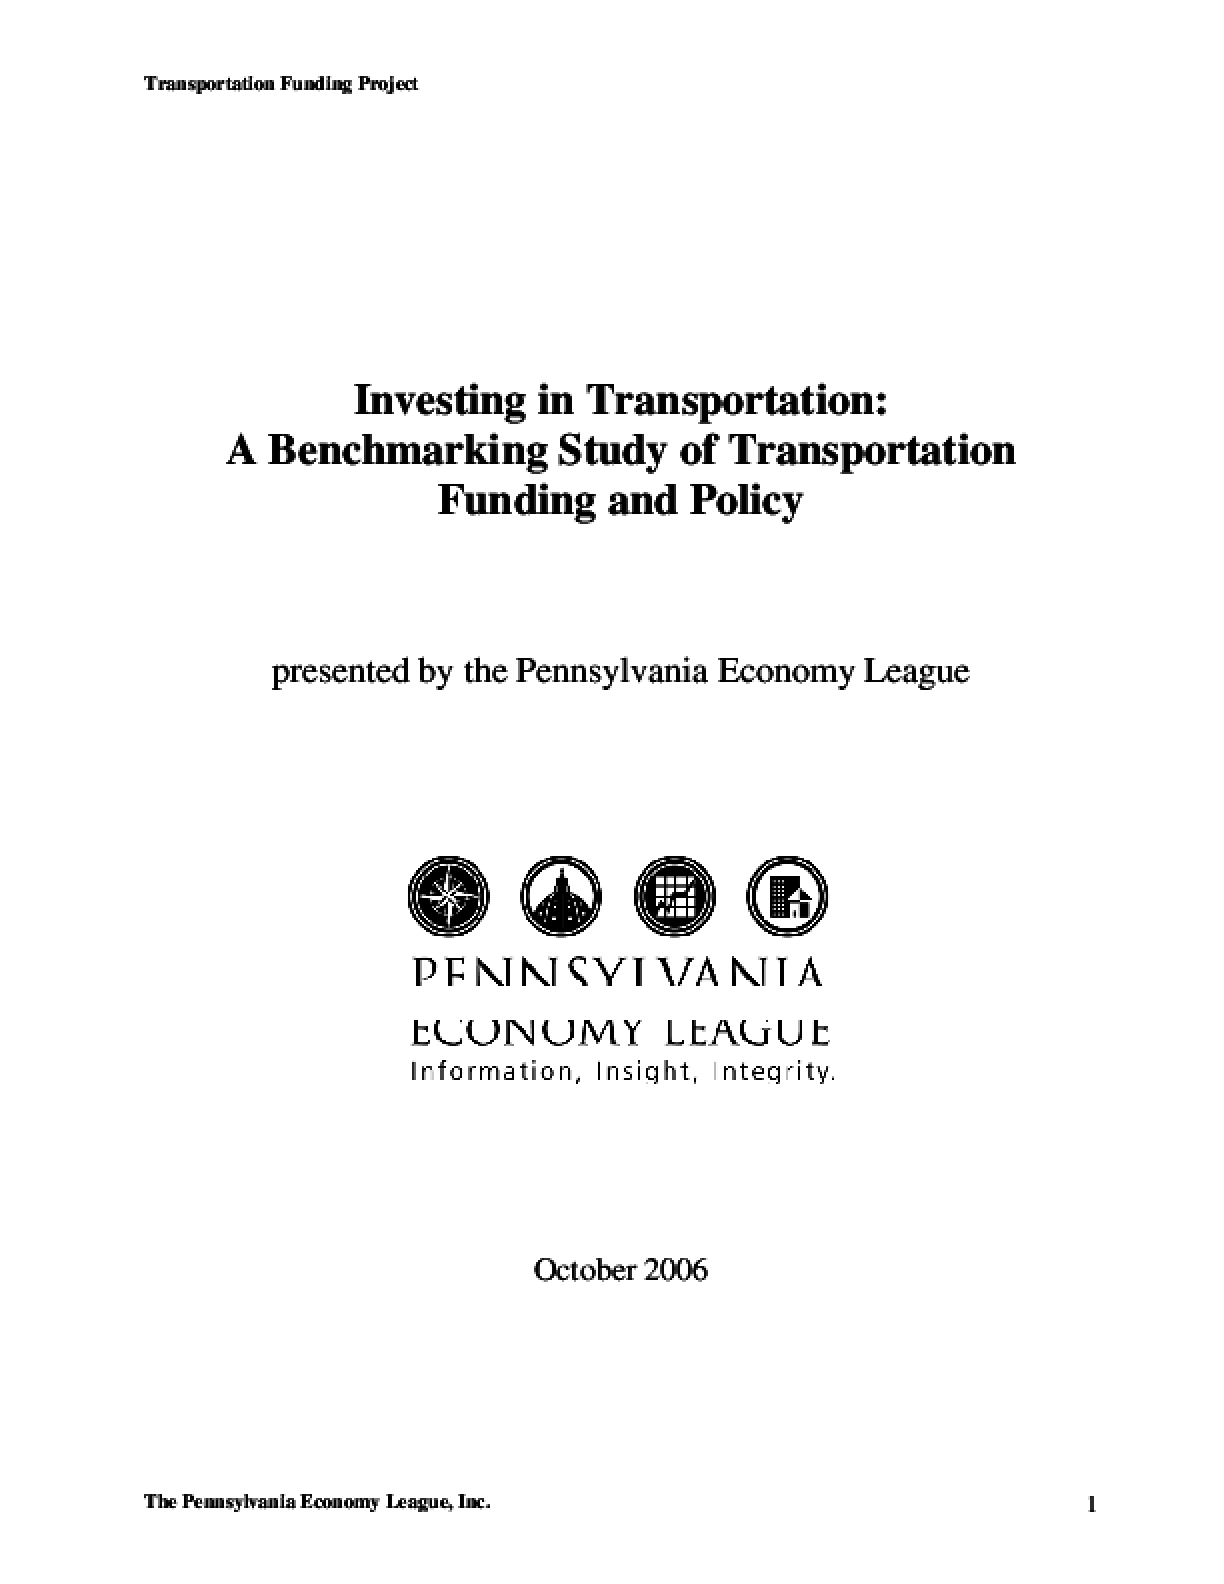 Investing in Transportation: A Benchmarking Study of Transportation Funding and Policy